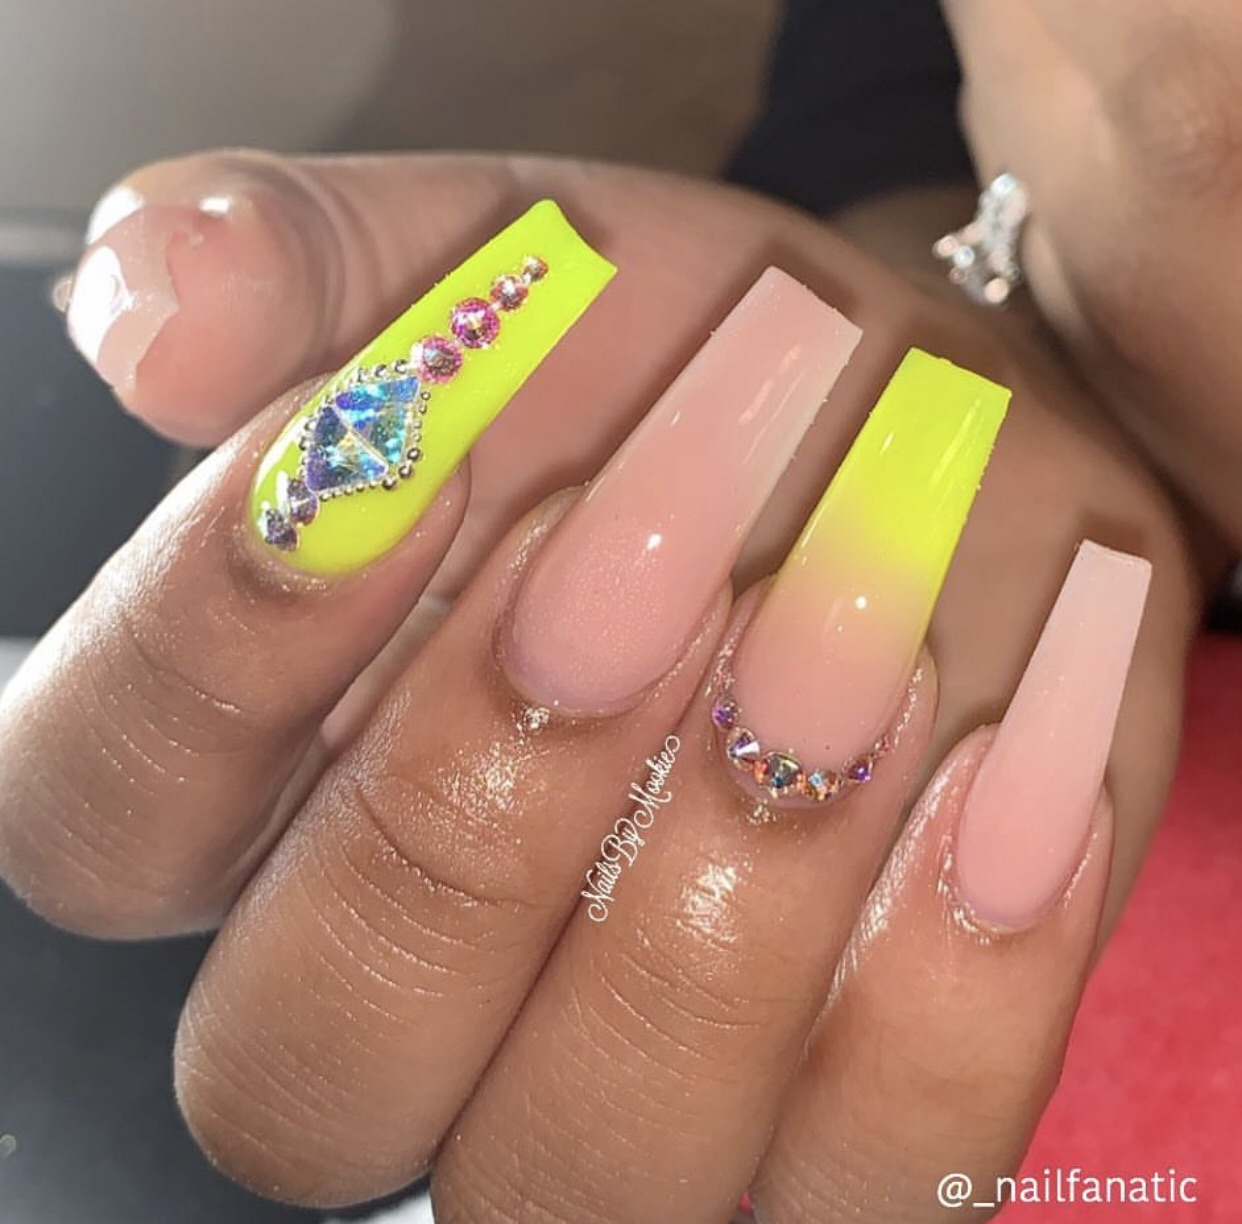 neon nails, nude nails, acrylic and acrylic nails